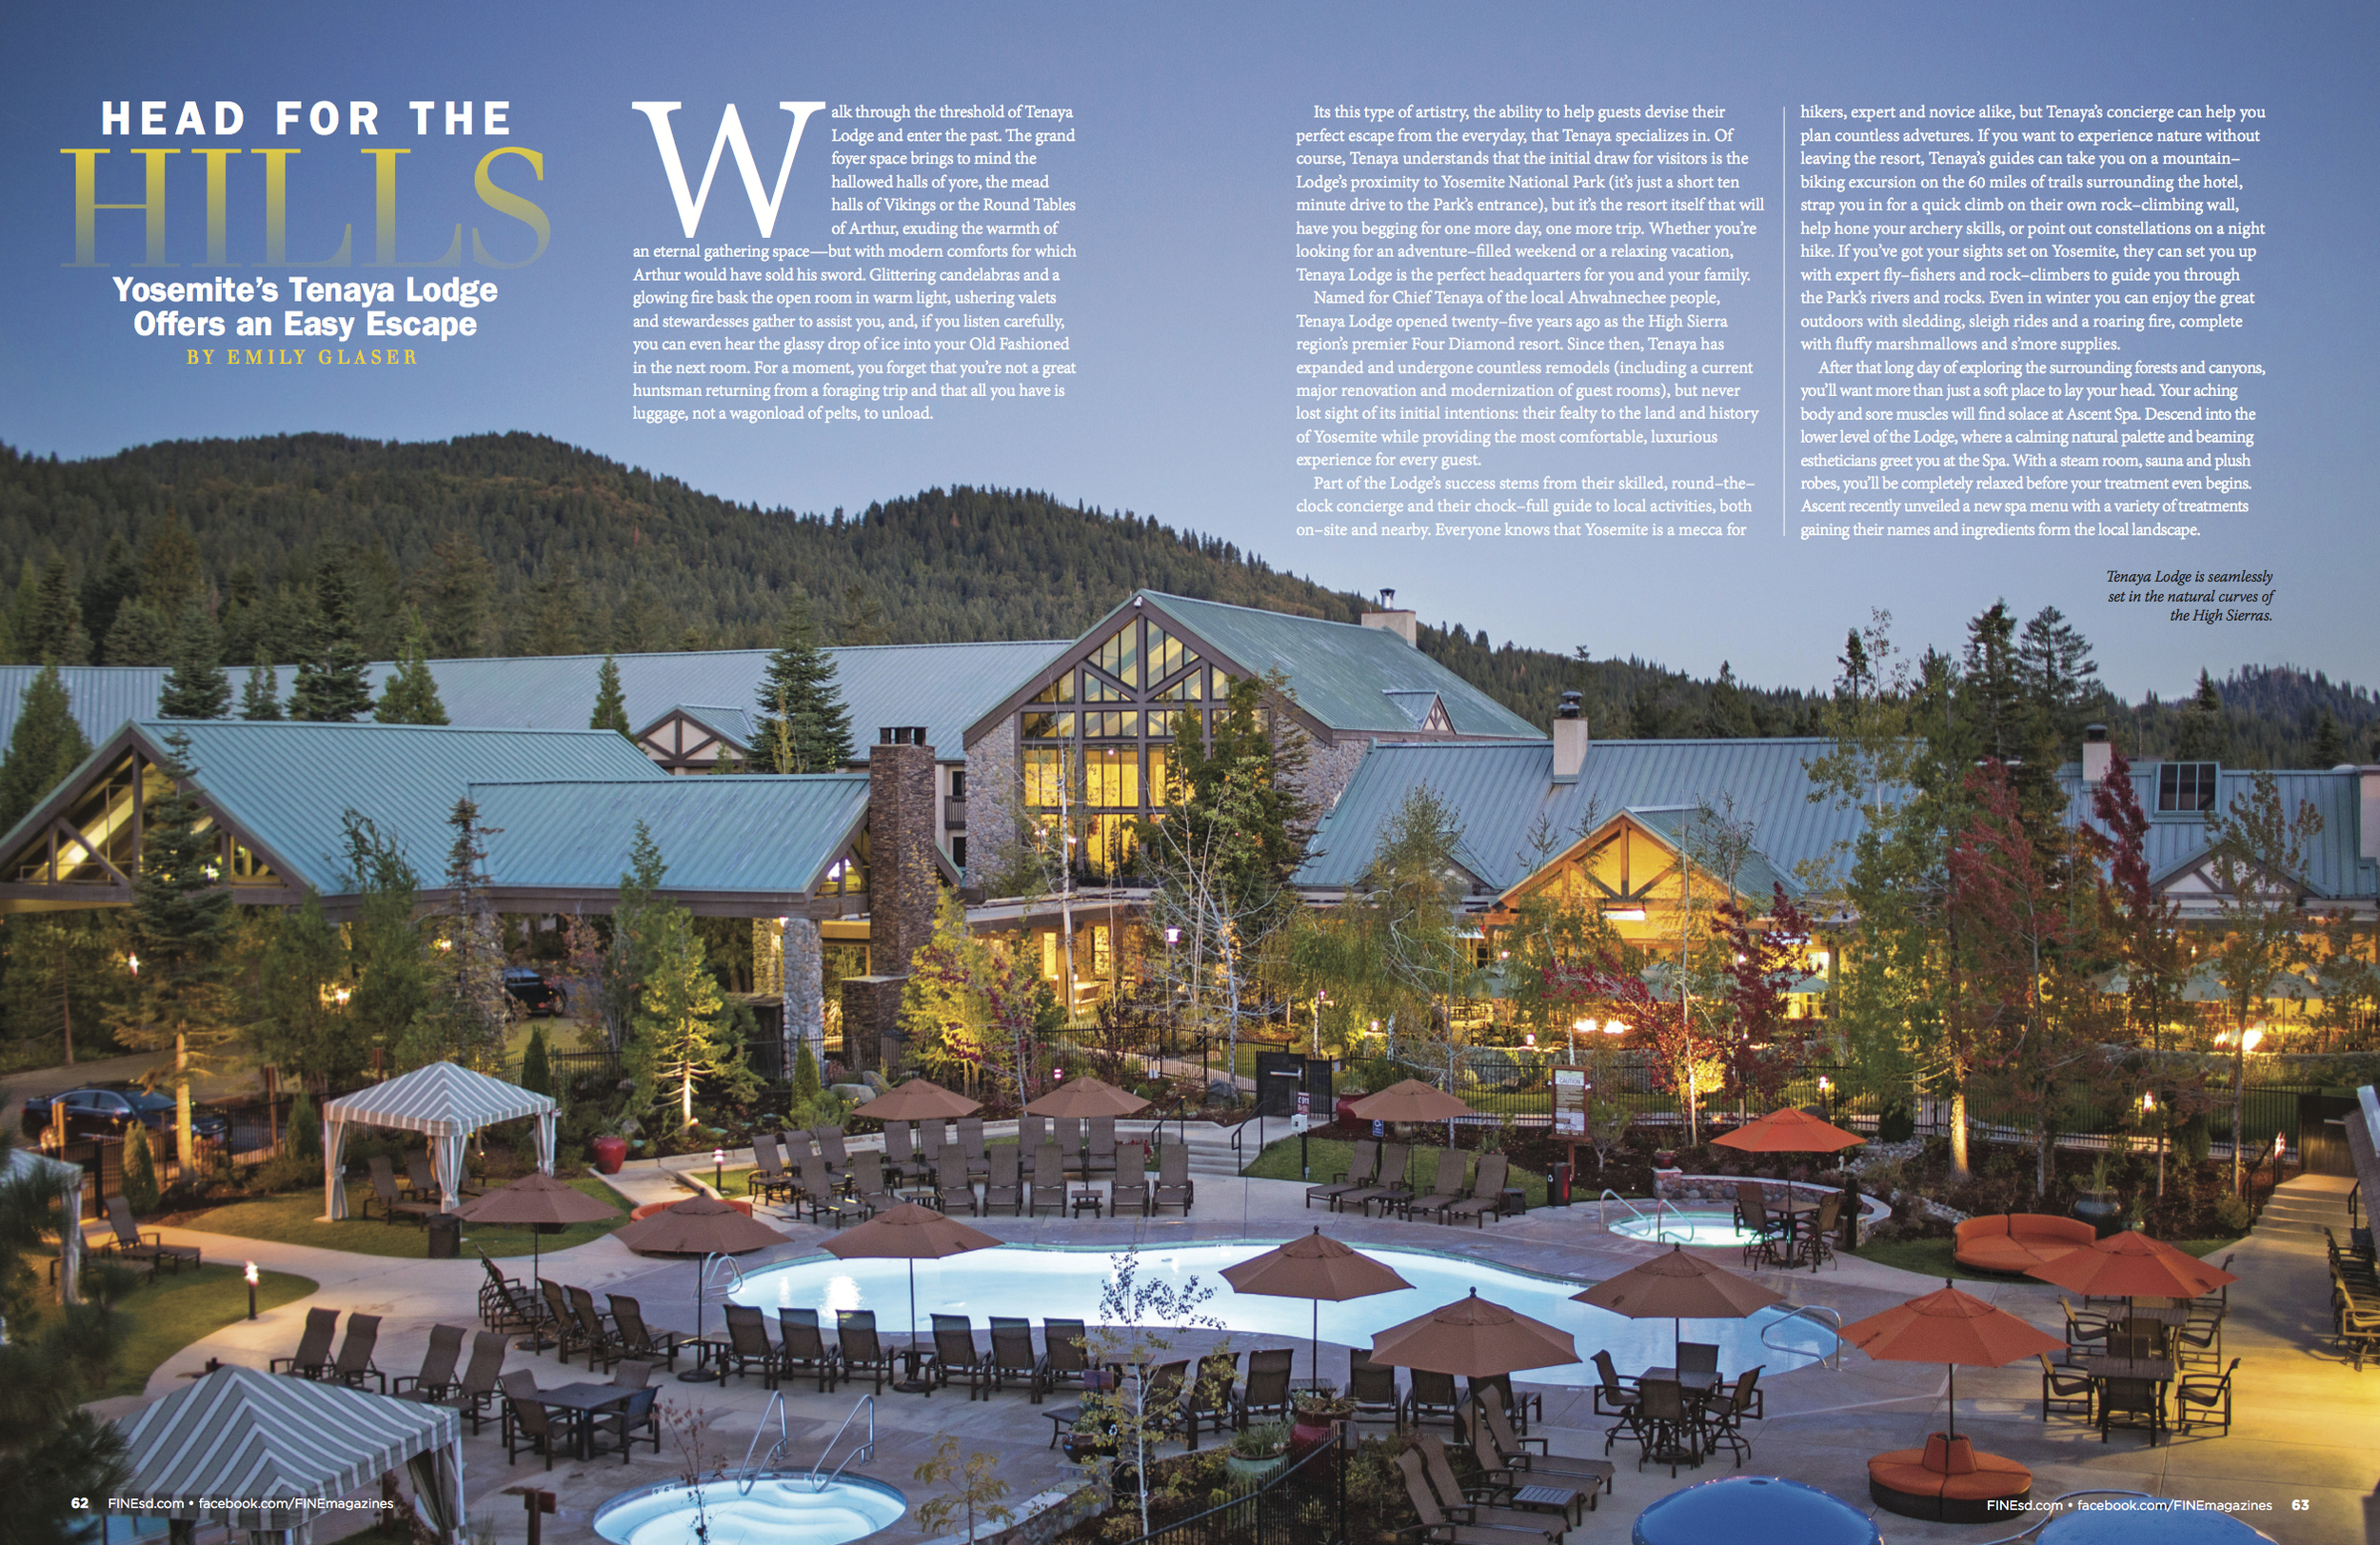 Head for the Hills: Yosemite's Tenaya Lodge Offers an Easy Escape